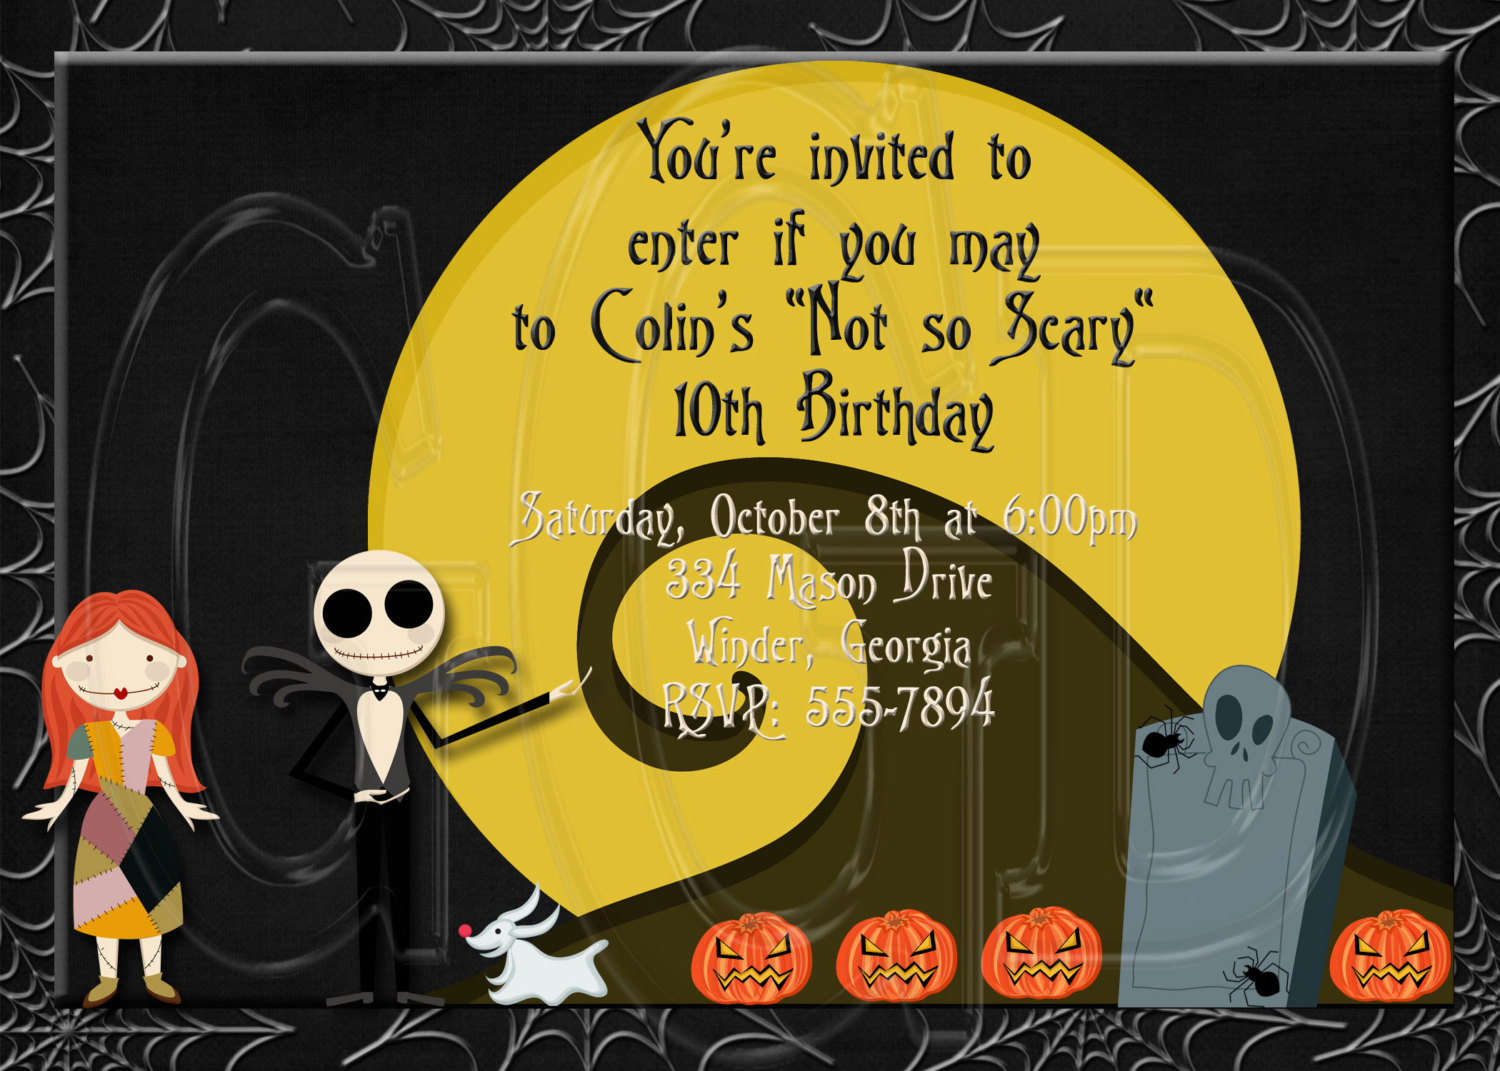 Christmas Birthday Image.The Nightmare Before Christmas Birthday Party Invitations